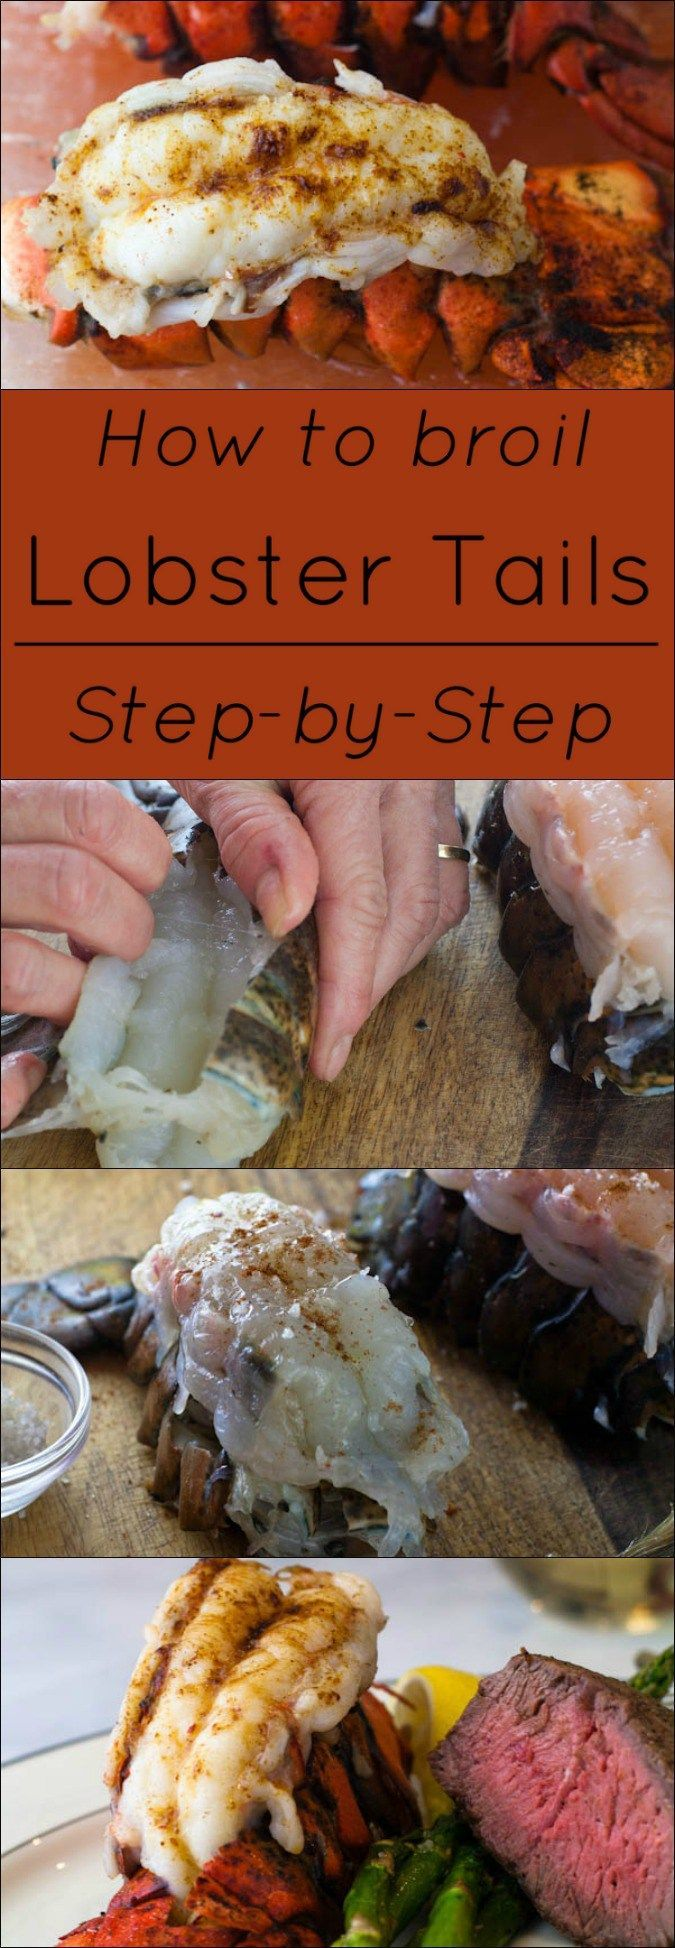 How to use the shell of the lobster as a broiling rack. Step by step instructions.